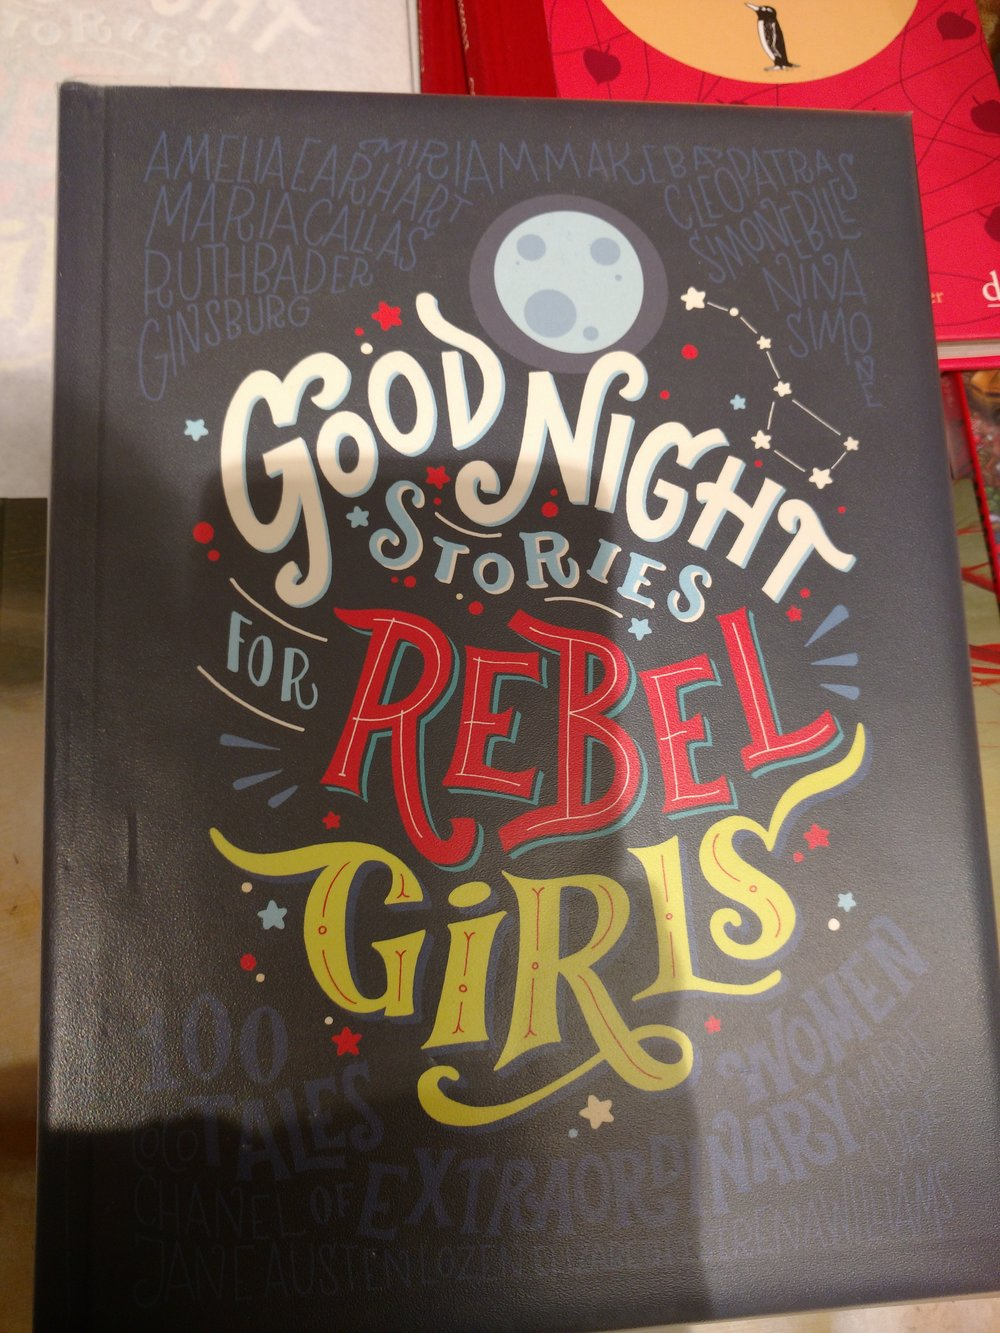 Good night stories for rebel girls : Kurze Bios von starken Frauen* für coole Kids!